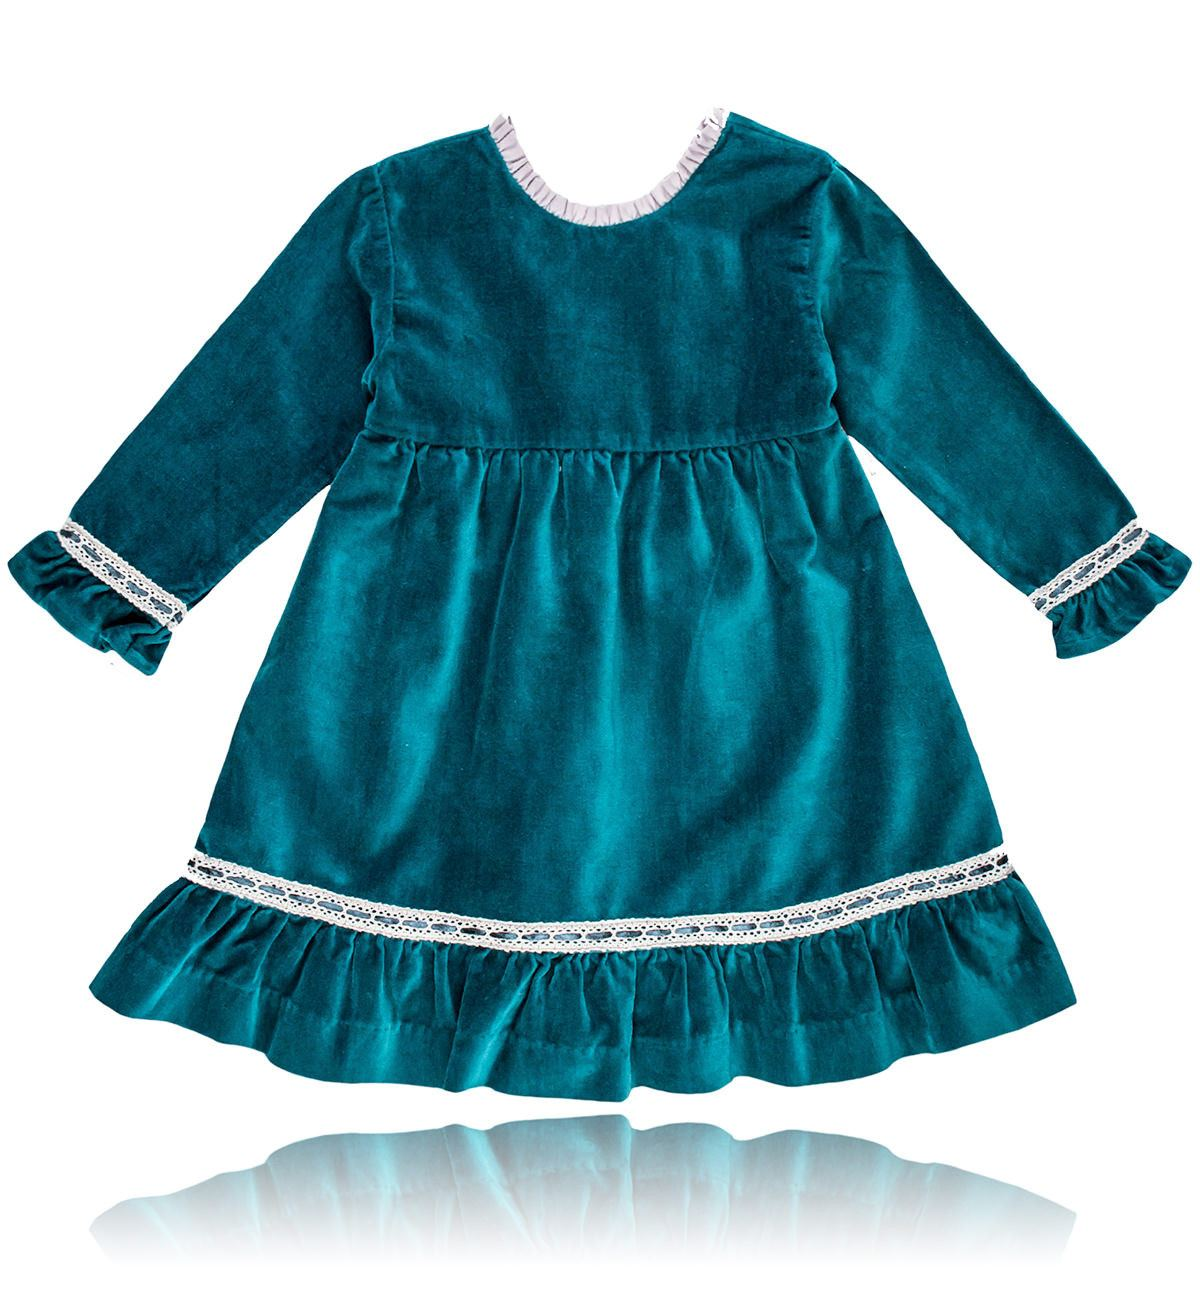 babymaC Spanish baby clothes | baby girl |All Collections